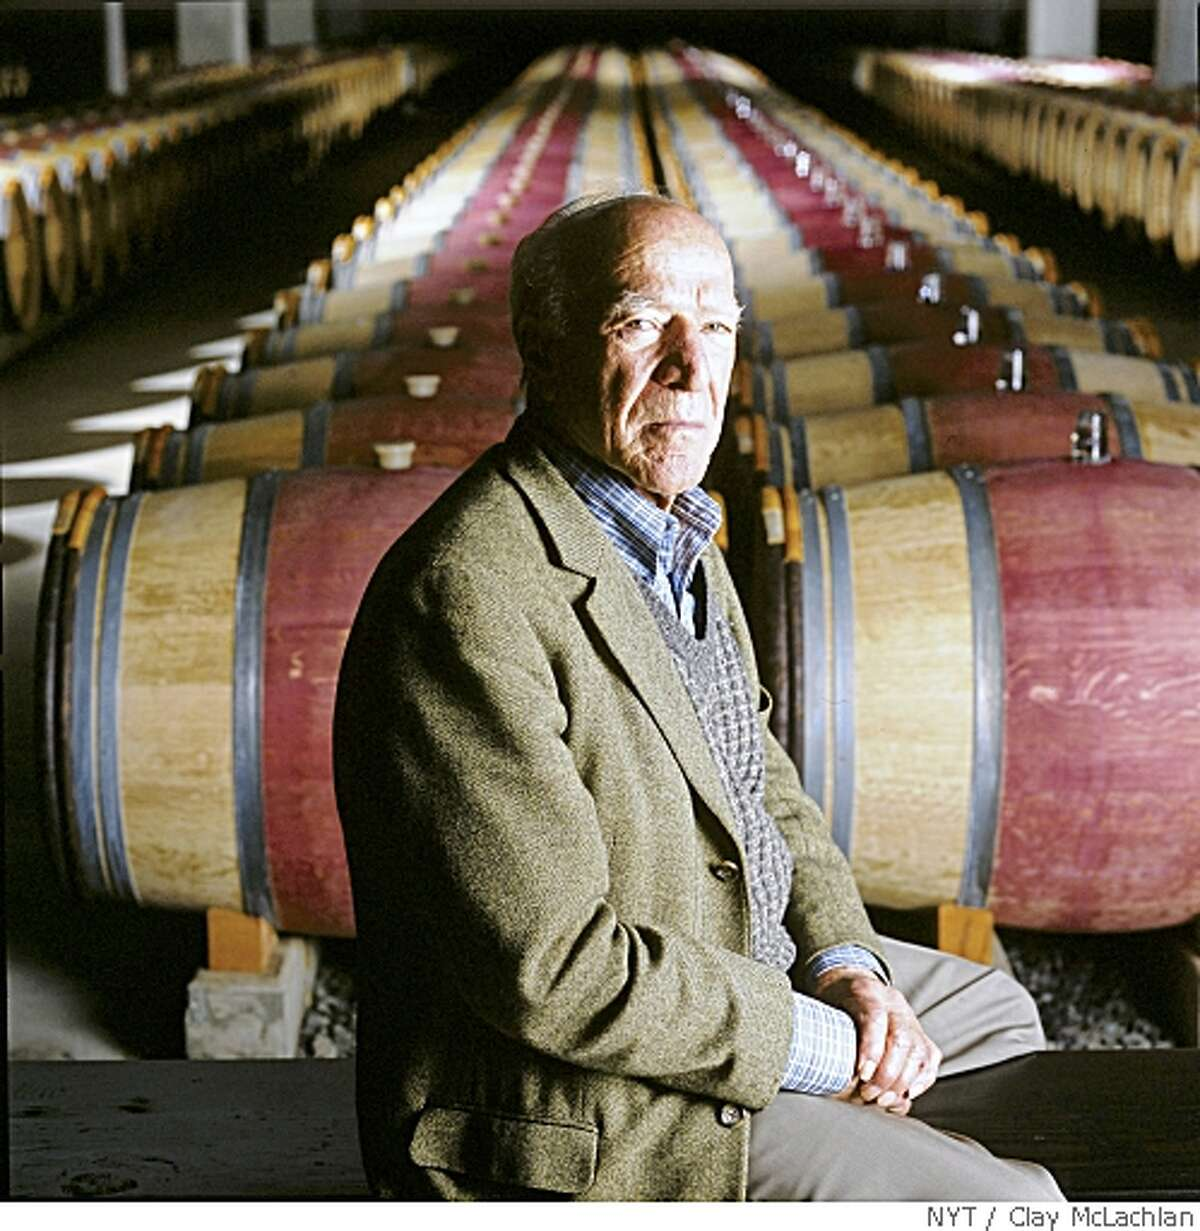 (NYT37) NAPA VALLEY, Calif. -- May 20, 2008 -- WINE-MONDAVI -- American wine icon Robert Mondavi, in 2003 in his Napa Valley winery. Mondavi, the California vintner who set in motion the rebirth of the Napa Valley wine industry and, to a generation of Americans, championed the idea that fine wine was an integral part of the good life, died Friday, May 16, 2008 at his home in Yountville, Calif. He was 94. (Clay McLachlan/The Press Democrat, Santa Rosa)